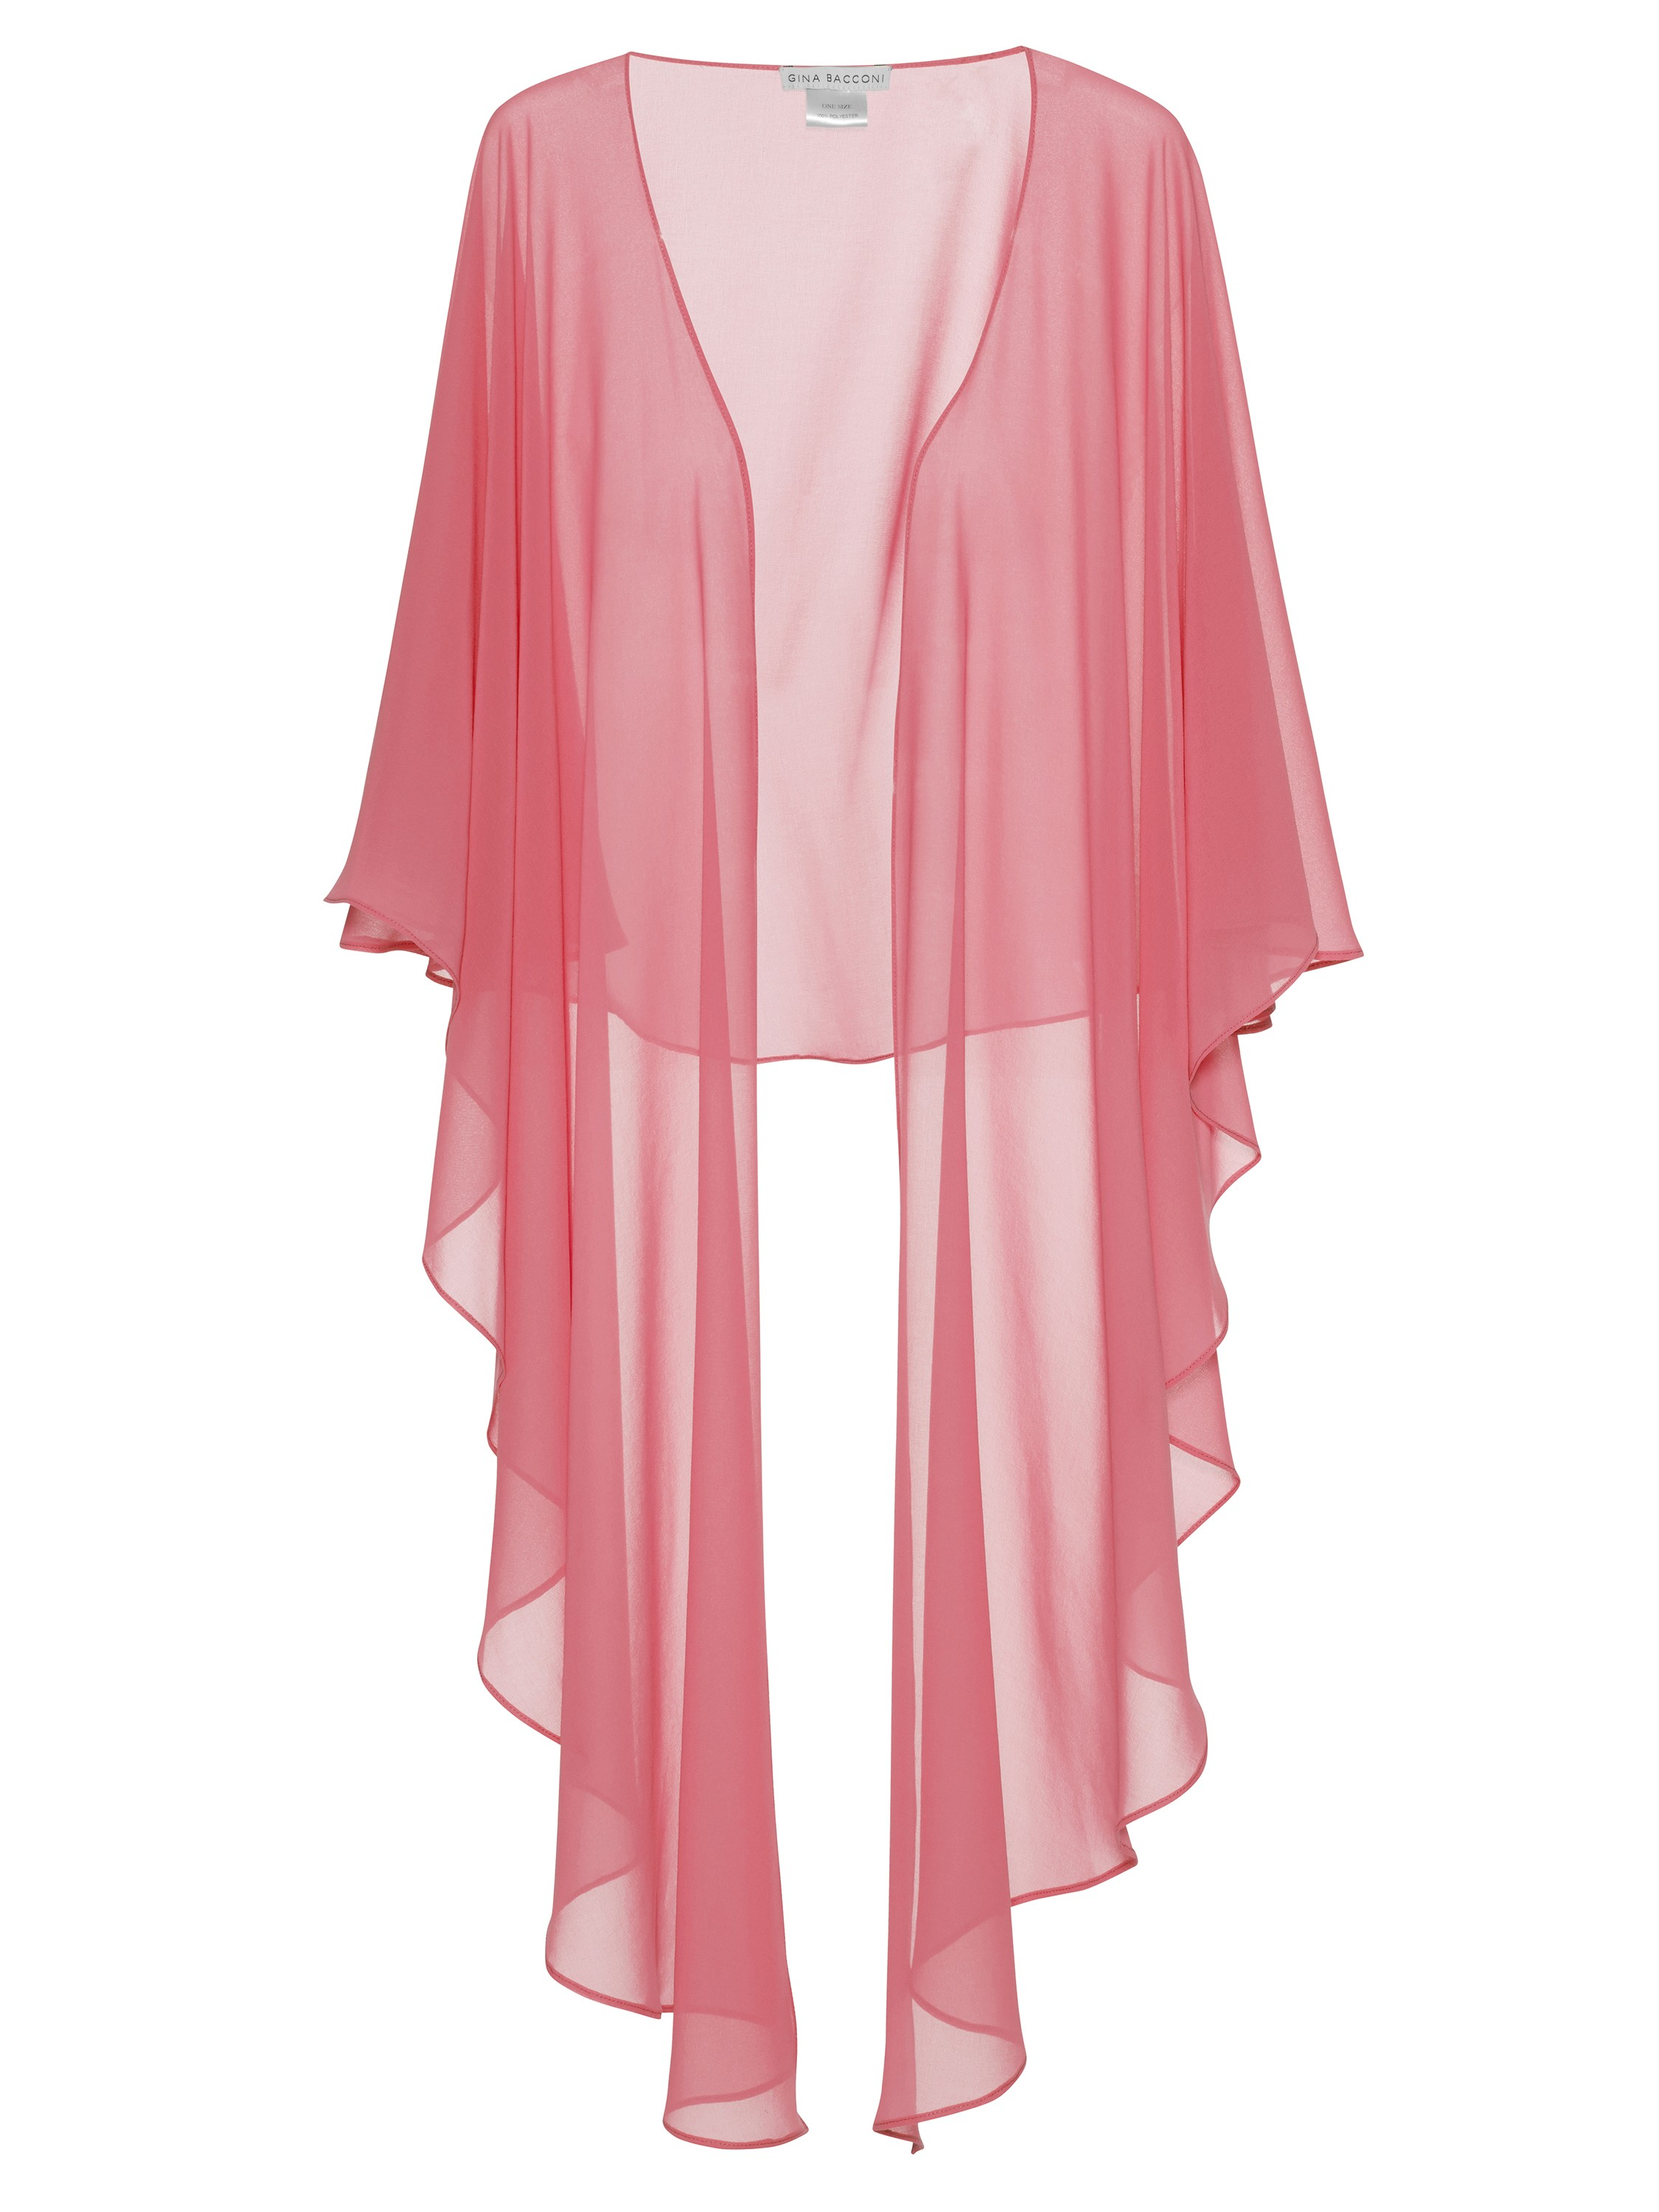 shawls for evening dresses photo - 1